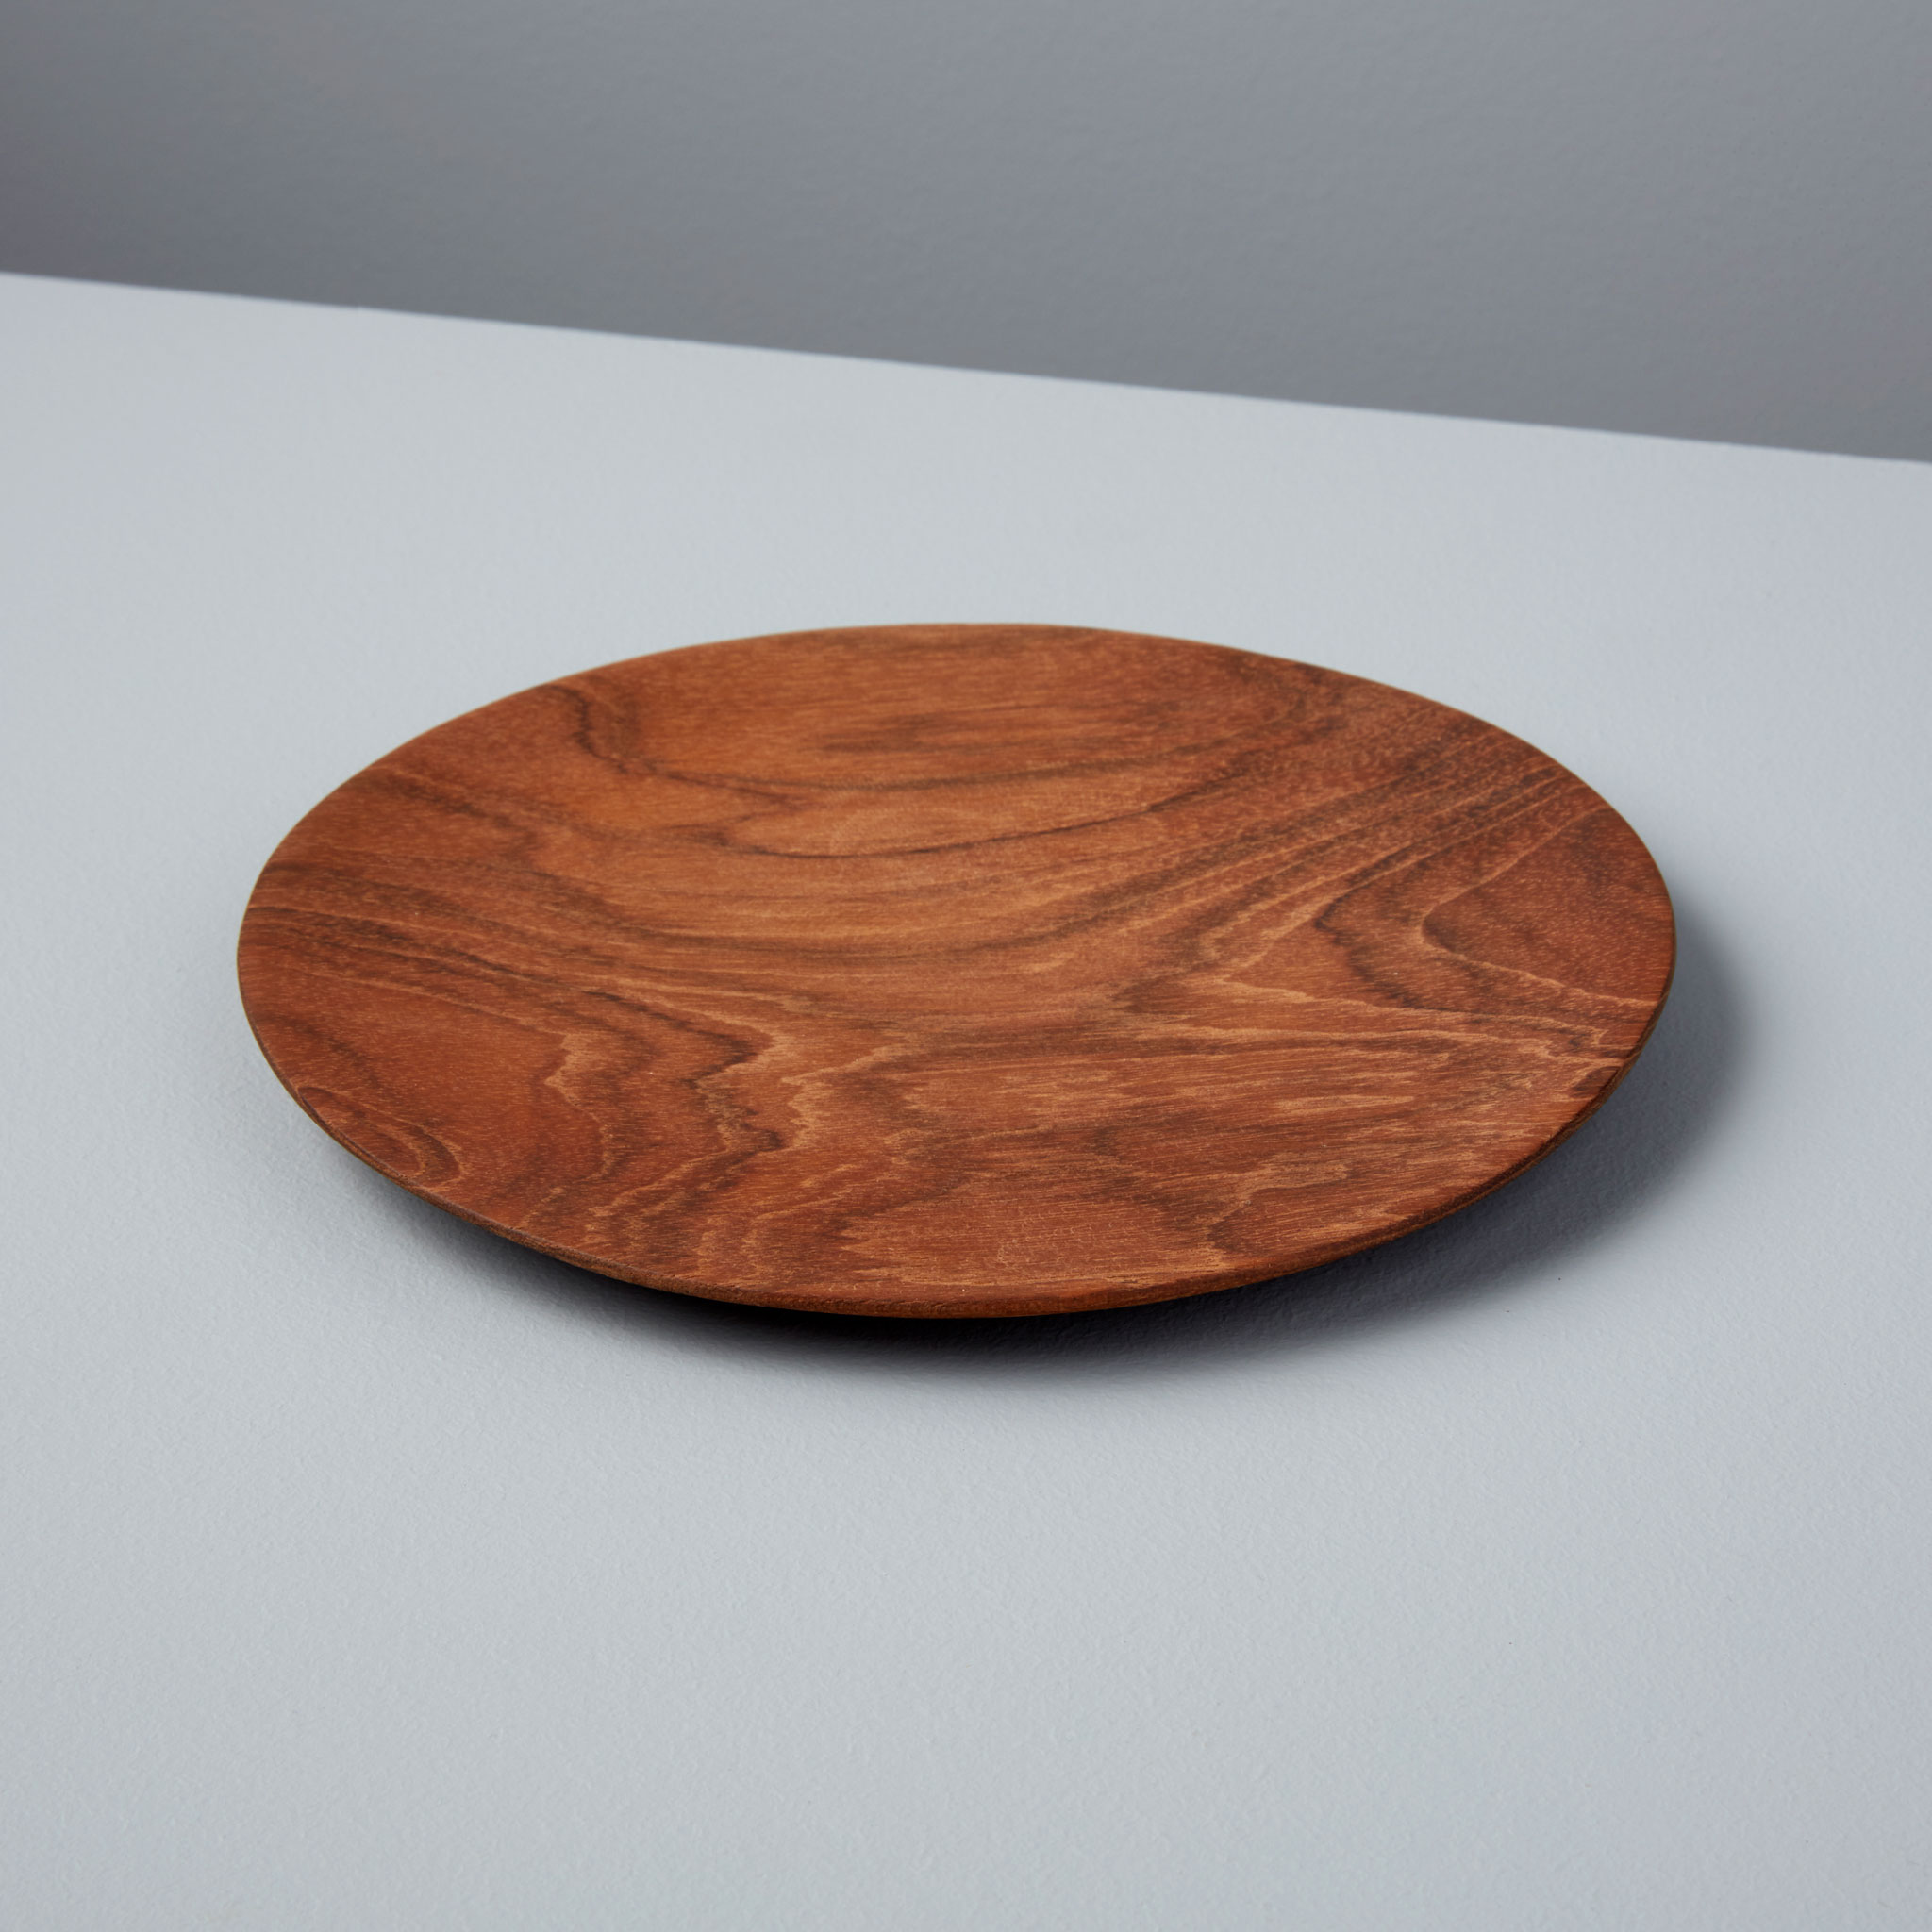 Be-Home_Teak-Round-Plate-Small_10-04